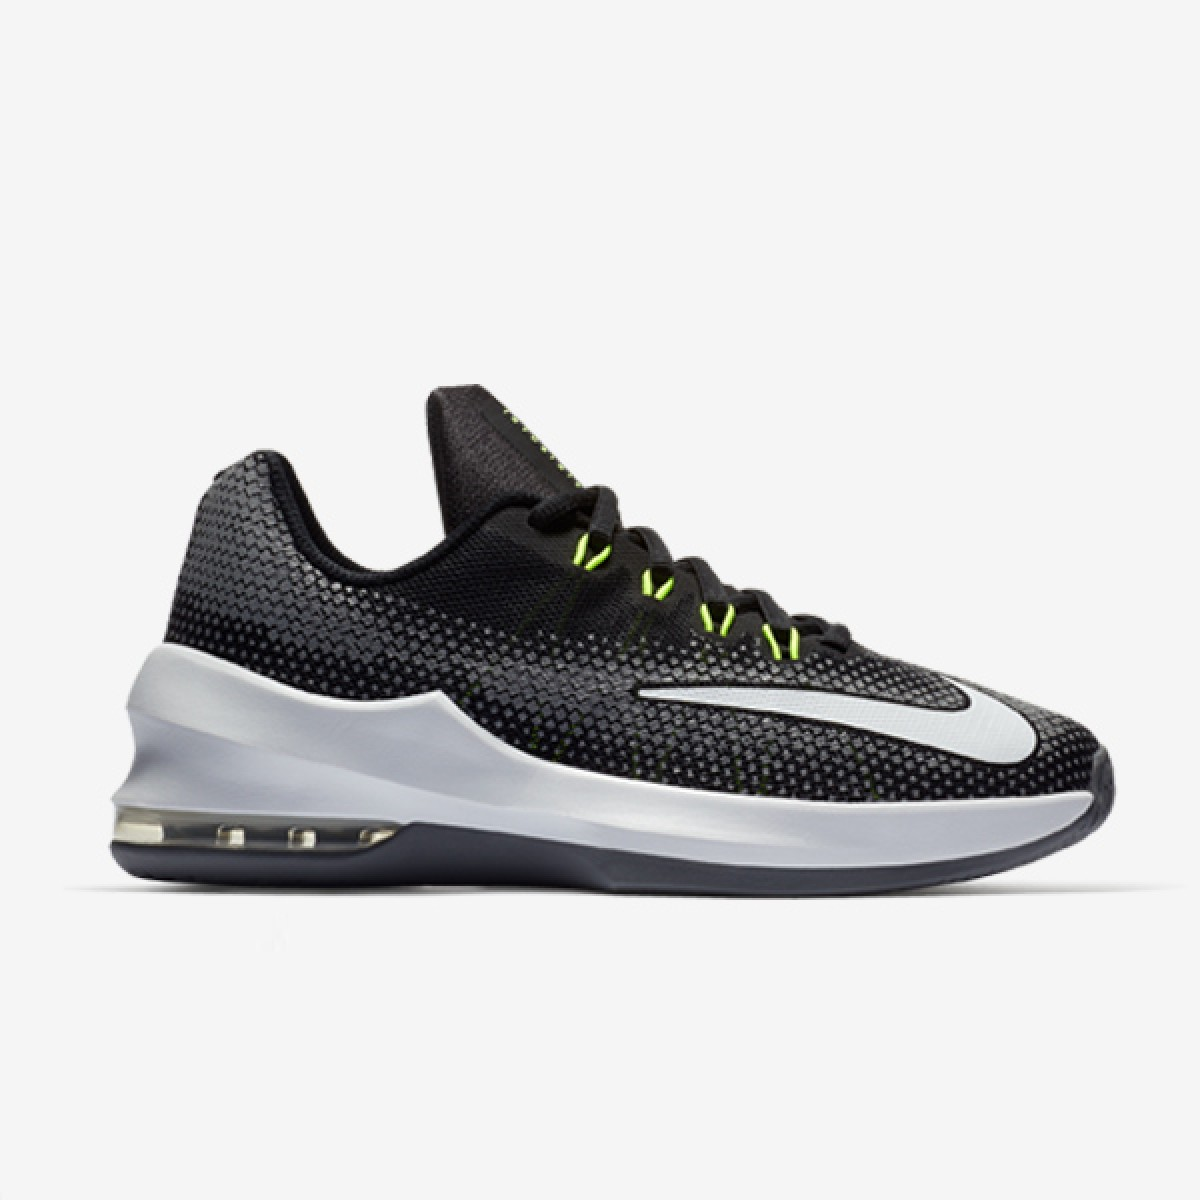 Nike Air Max Infuriate GS 'Black/Grey'